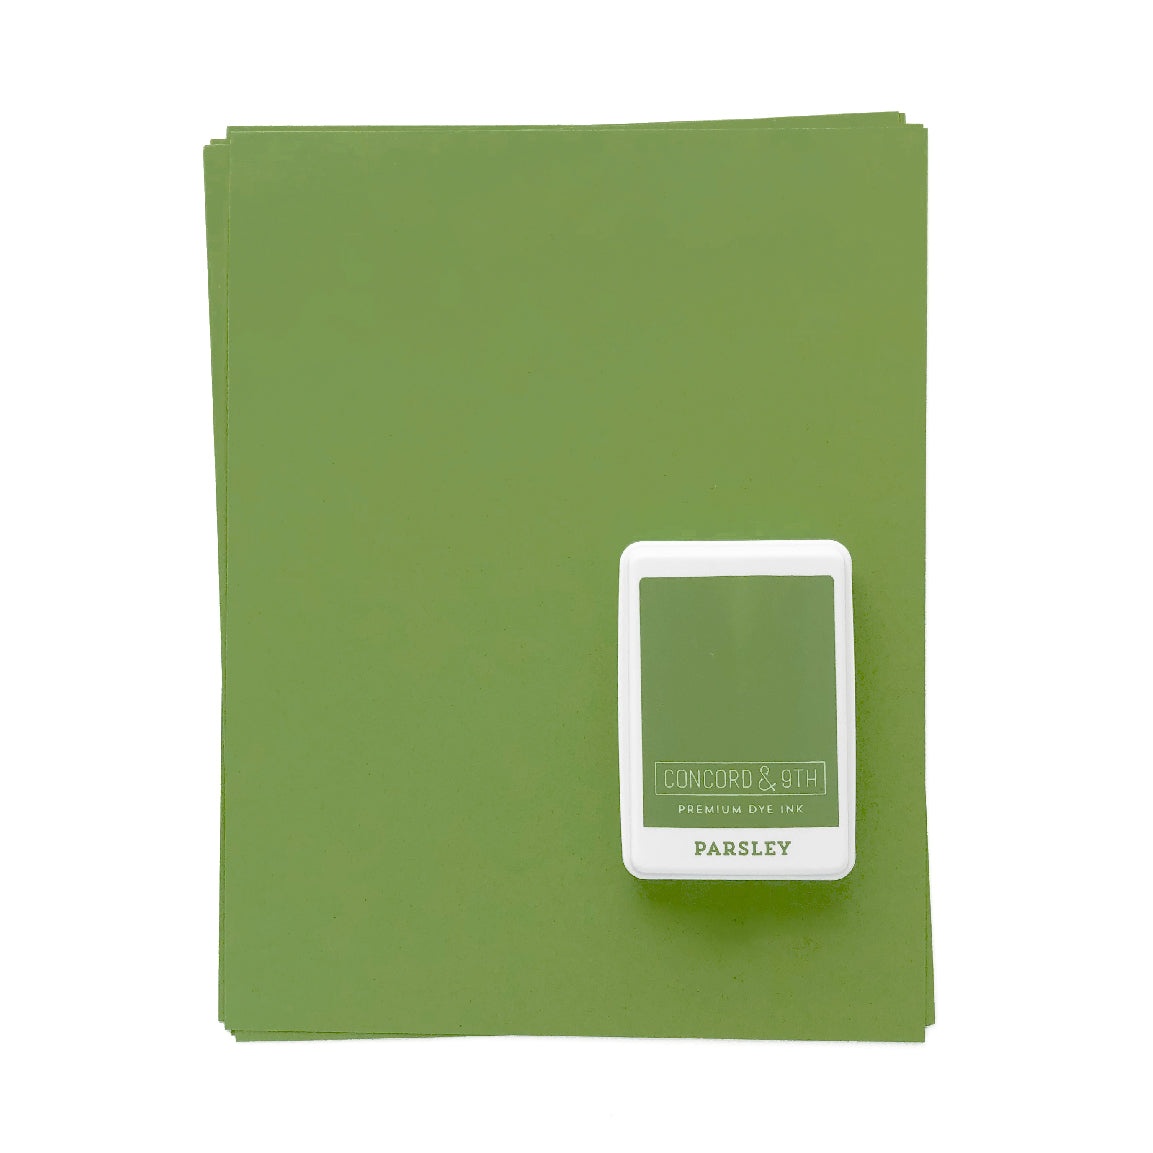 Parsley Ink Pad & Cardstock Bundle